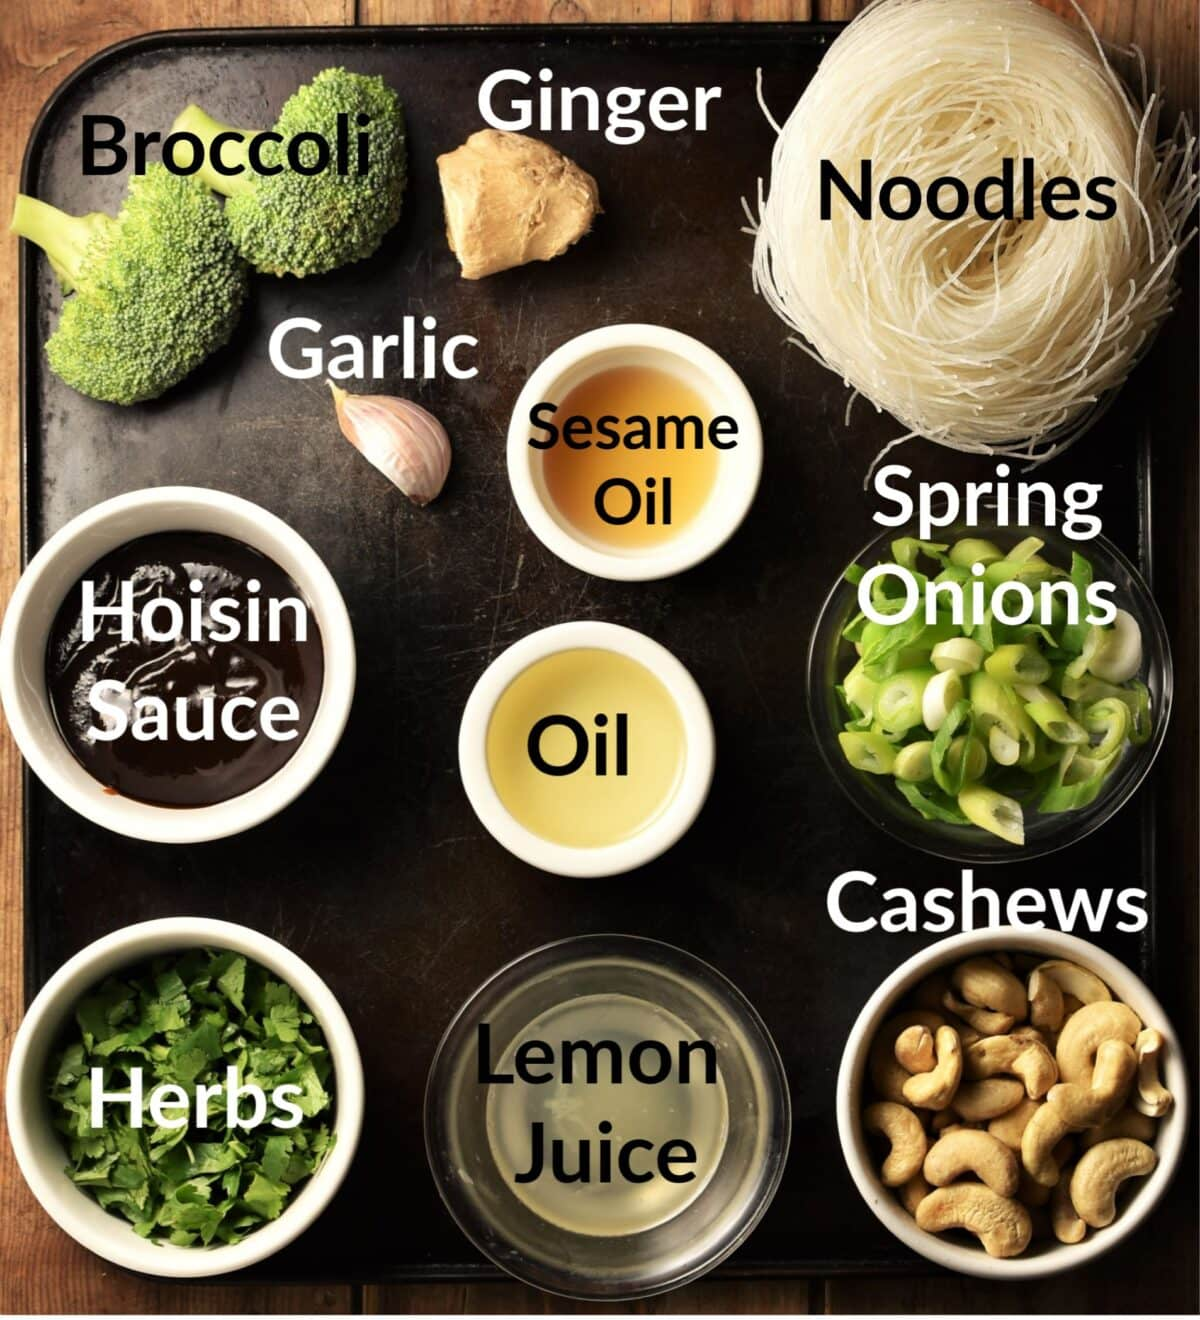 Noodle salad ingredients in individual dishes.